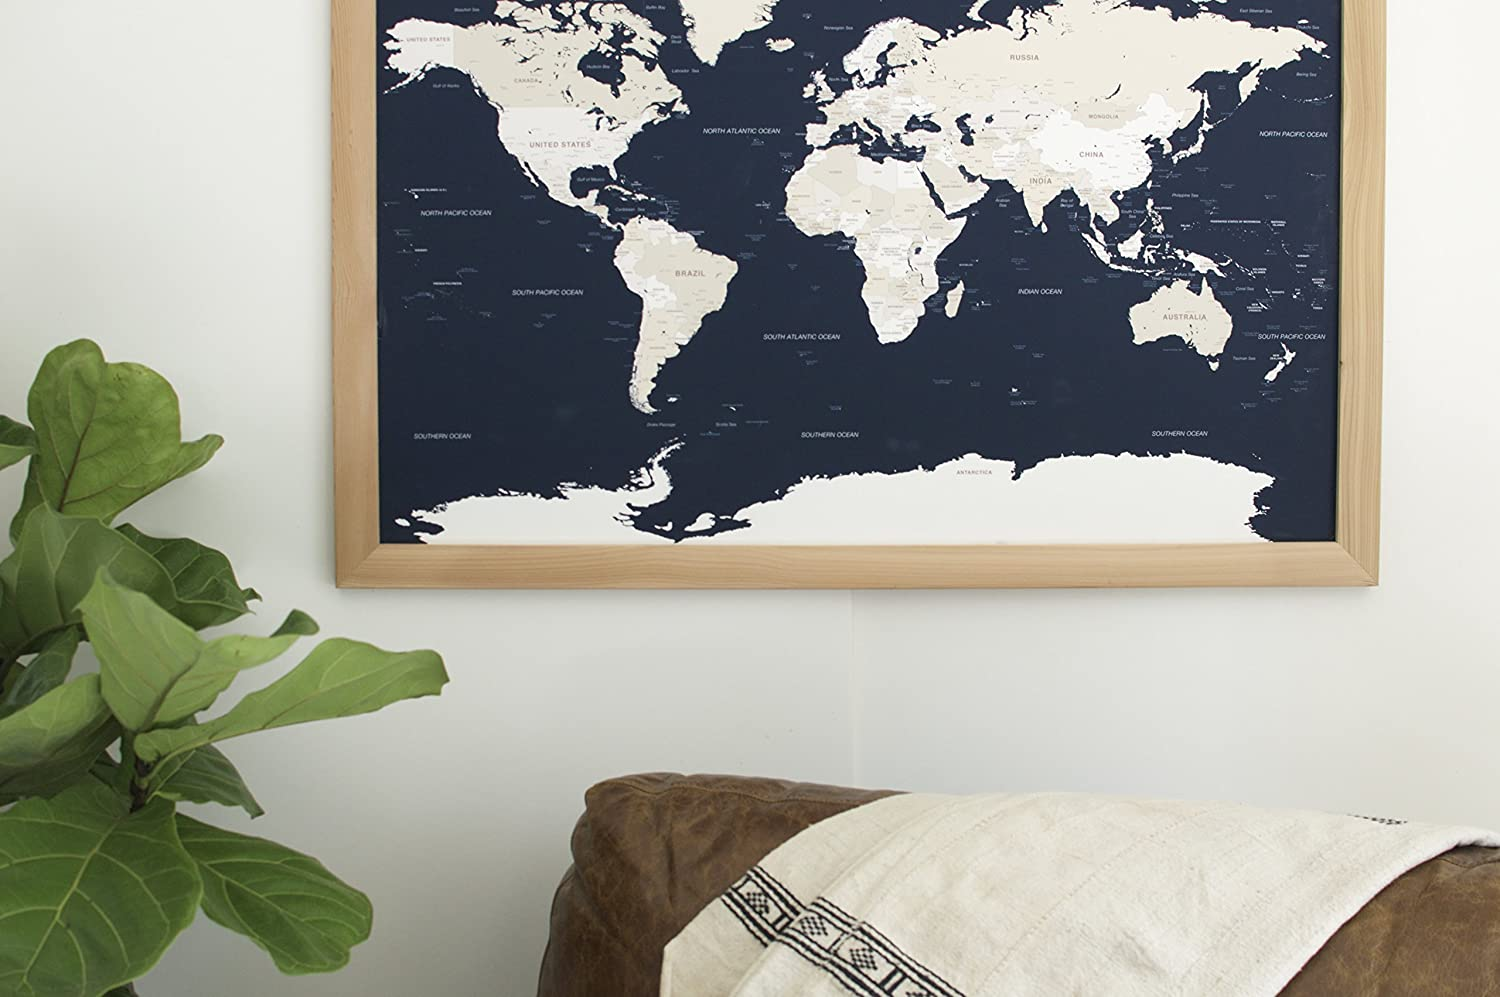 Amazon large navy world natural map large push pin travel map amazon large navy world natural map large push pin travel map framed world map in handcrafted wood frame 24x36 handmade gumiabroncs